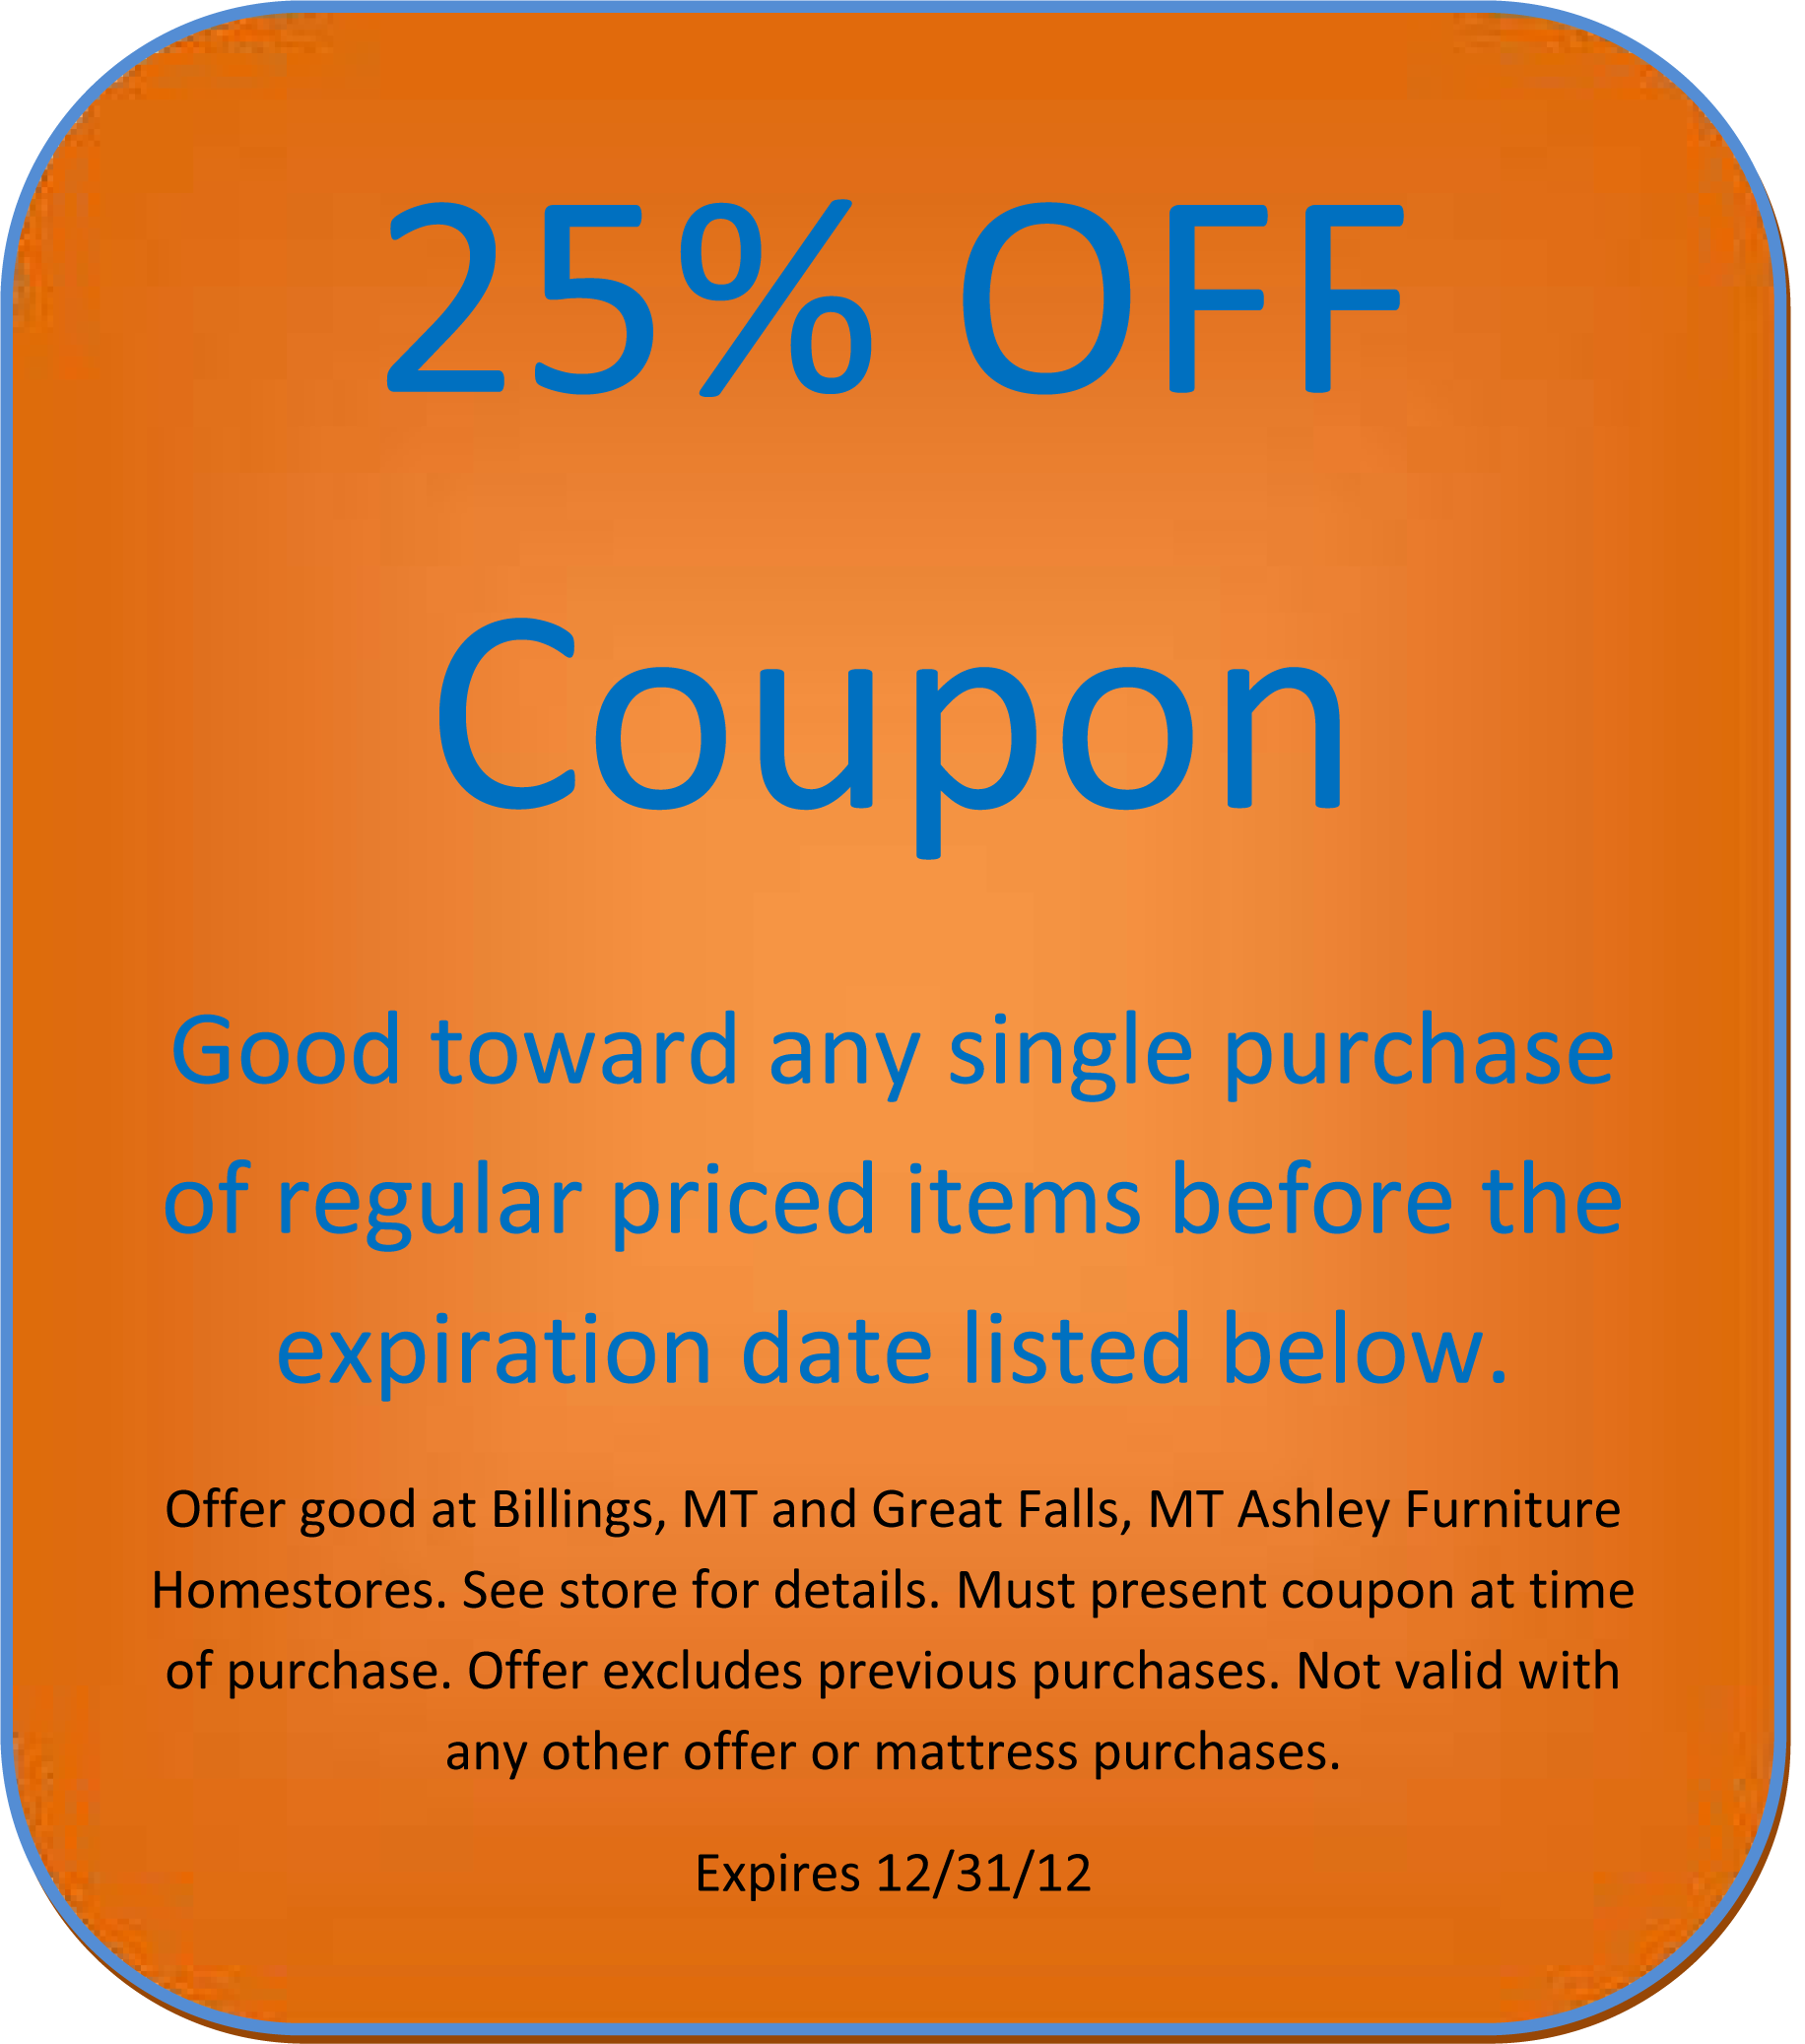 Quality furniture discounts coupon code